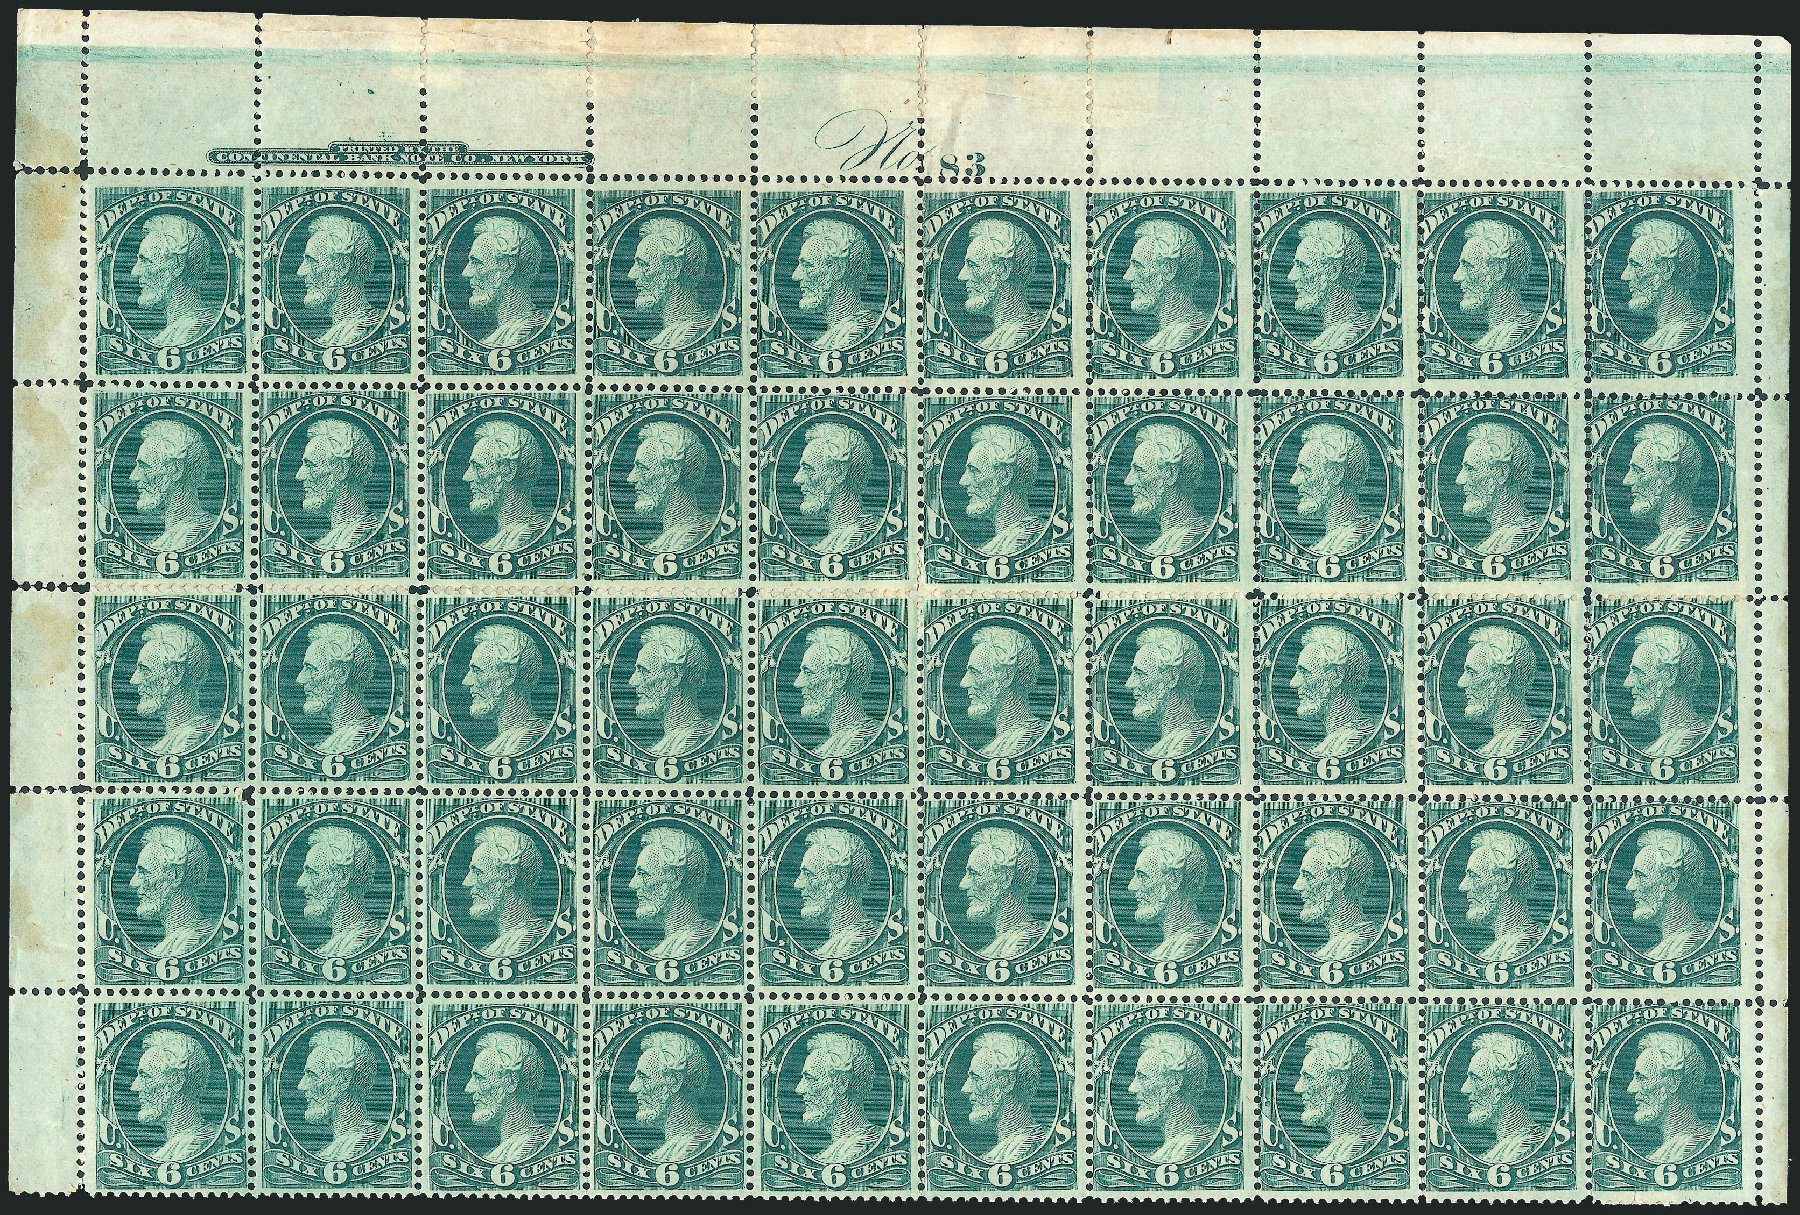 Prices of US Stamp Scott Catalogue #O60 - 1873 6c State Official. Robert Siegel Auction Galleries, Oct 2011, Sale 1014, Lot 2357